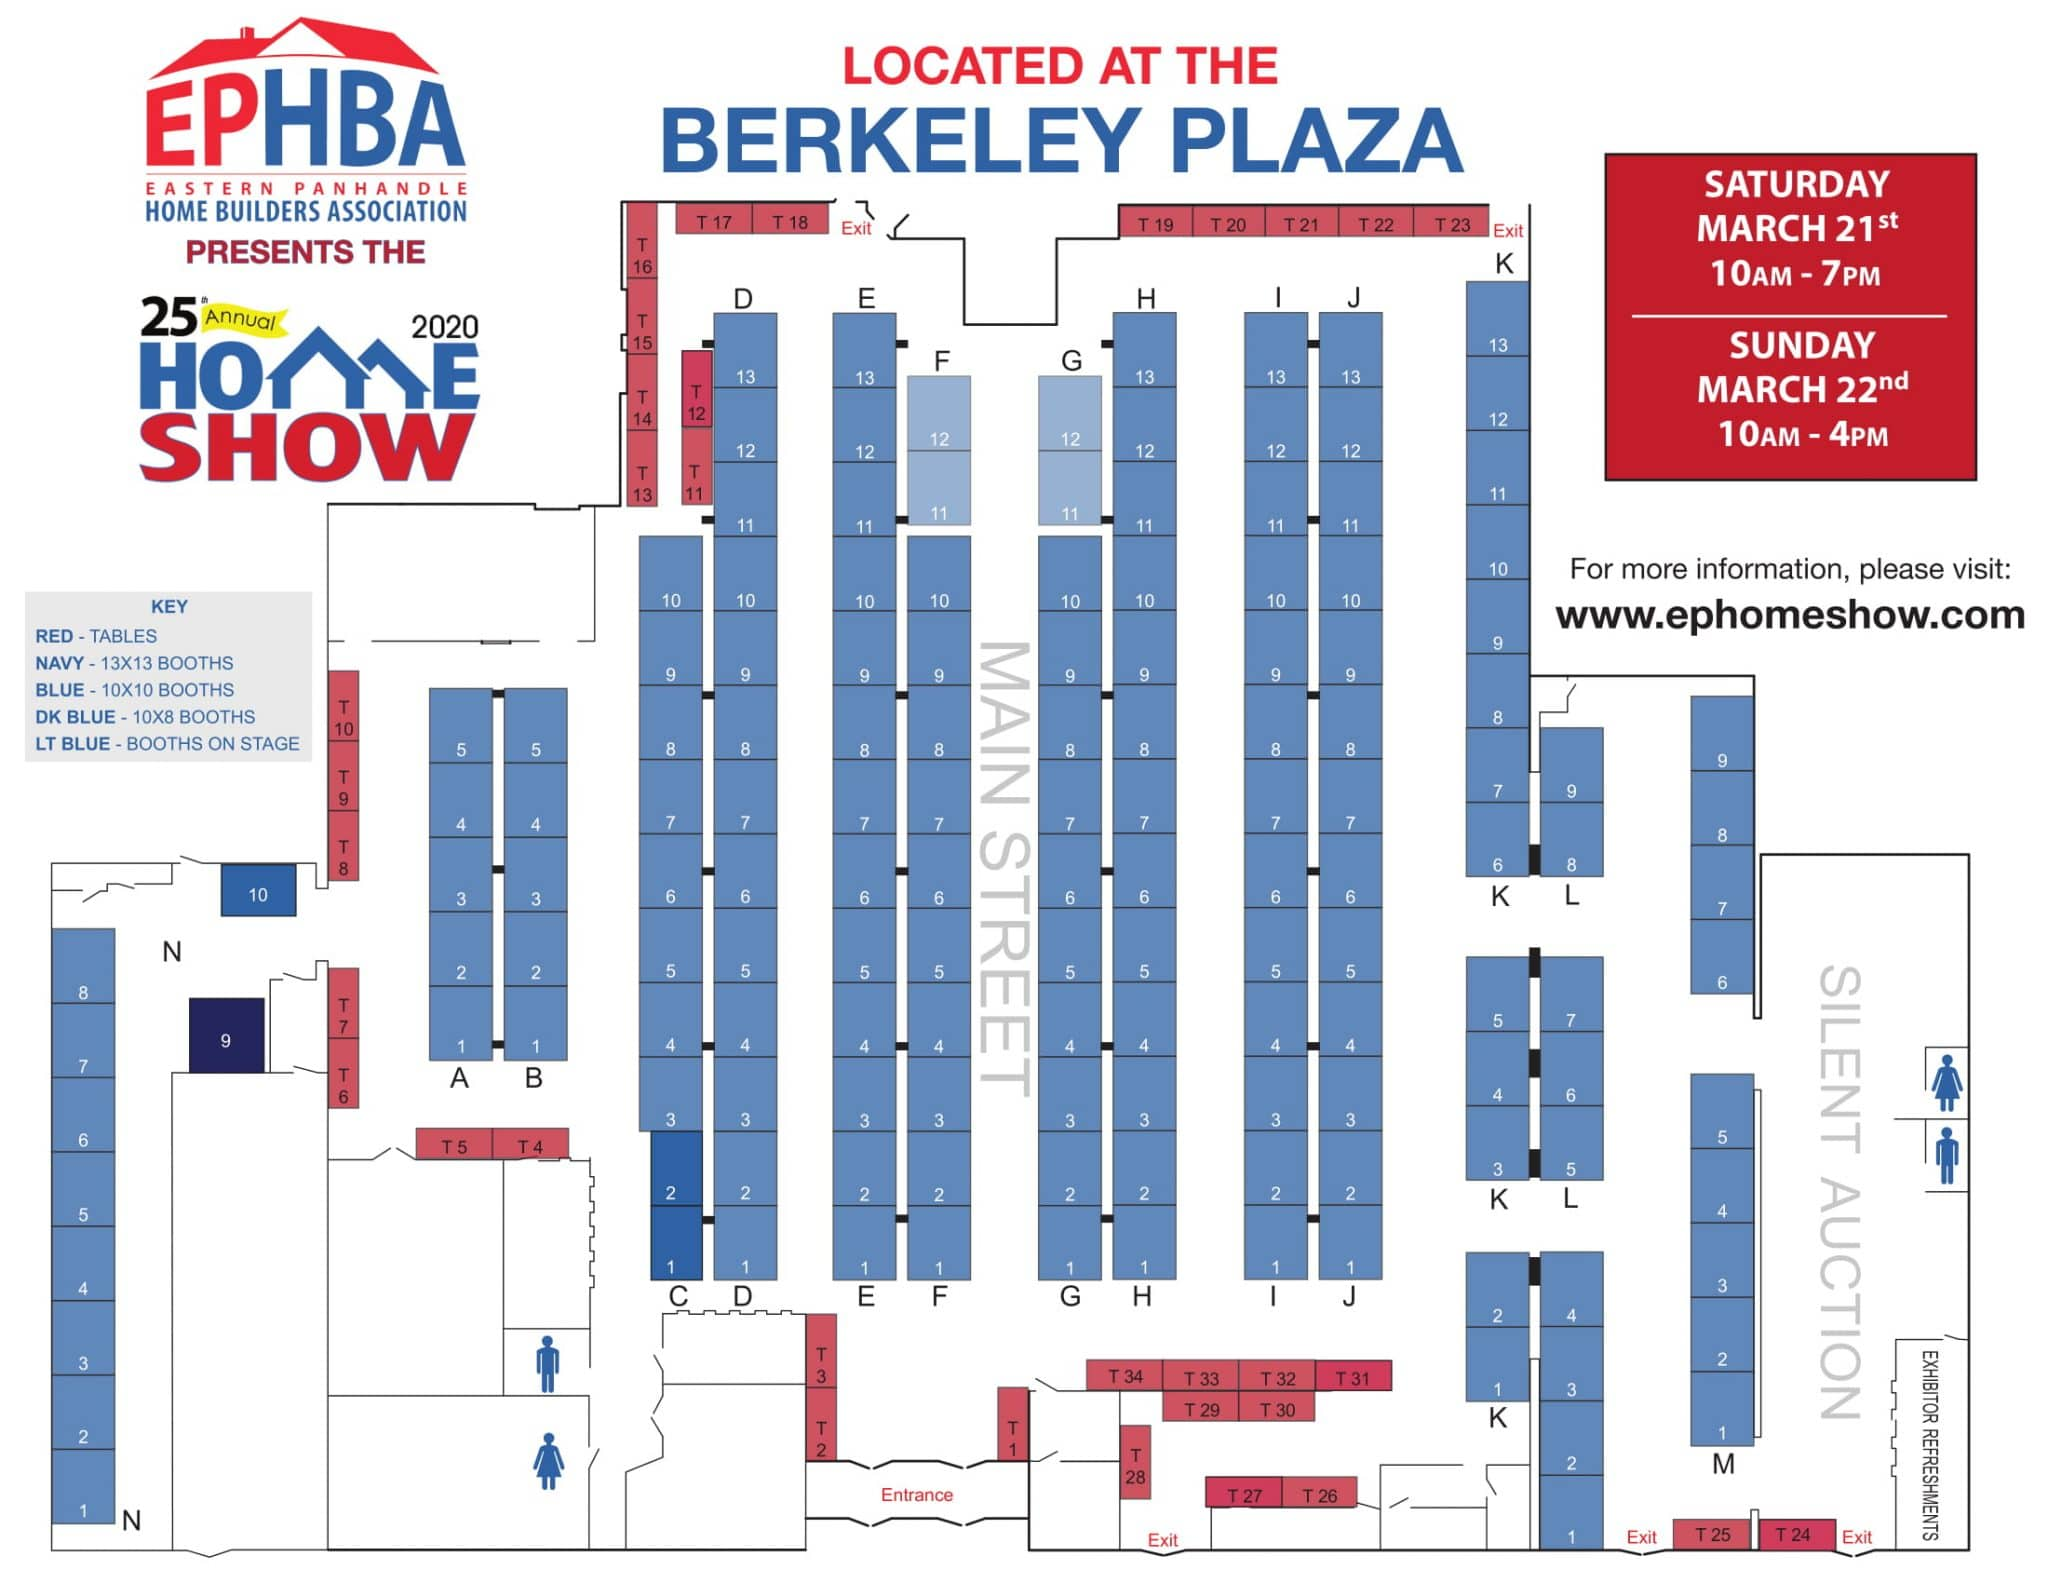 map of booth numbers for the homeshow